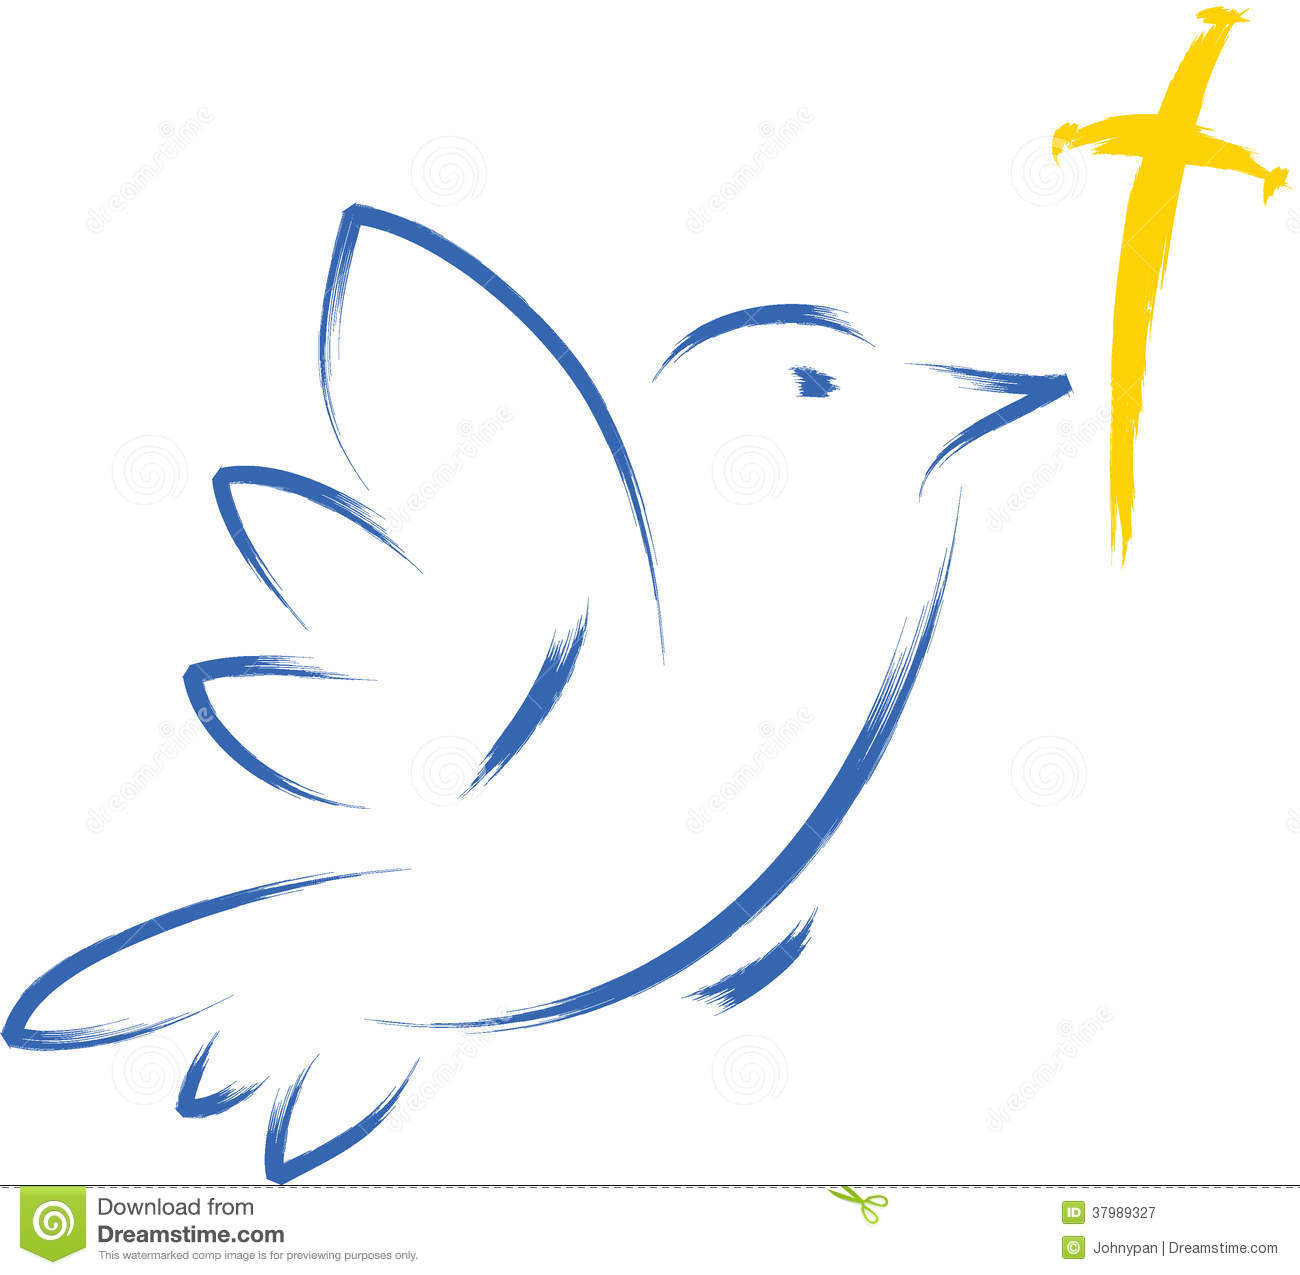 Funeral Dove Clipart Dove With Cross Royalty Free